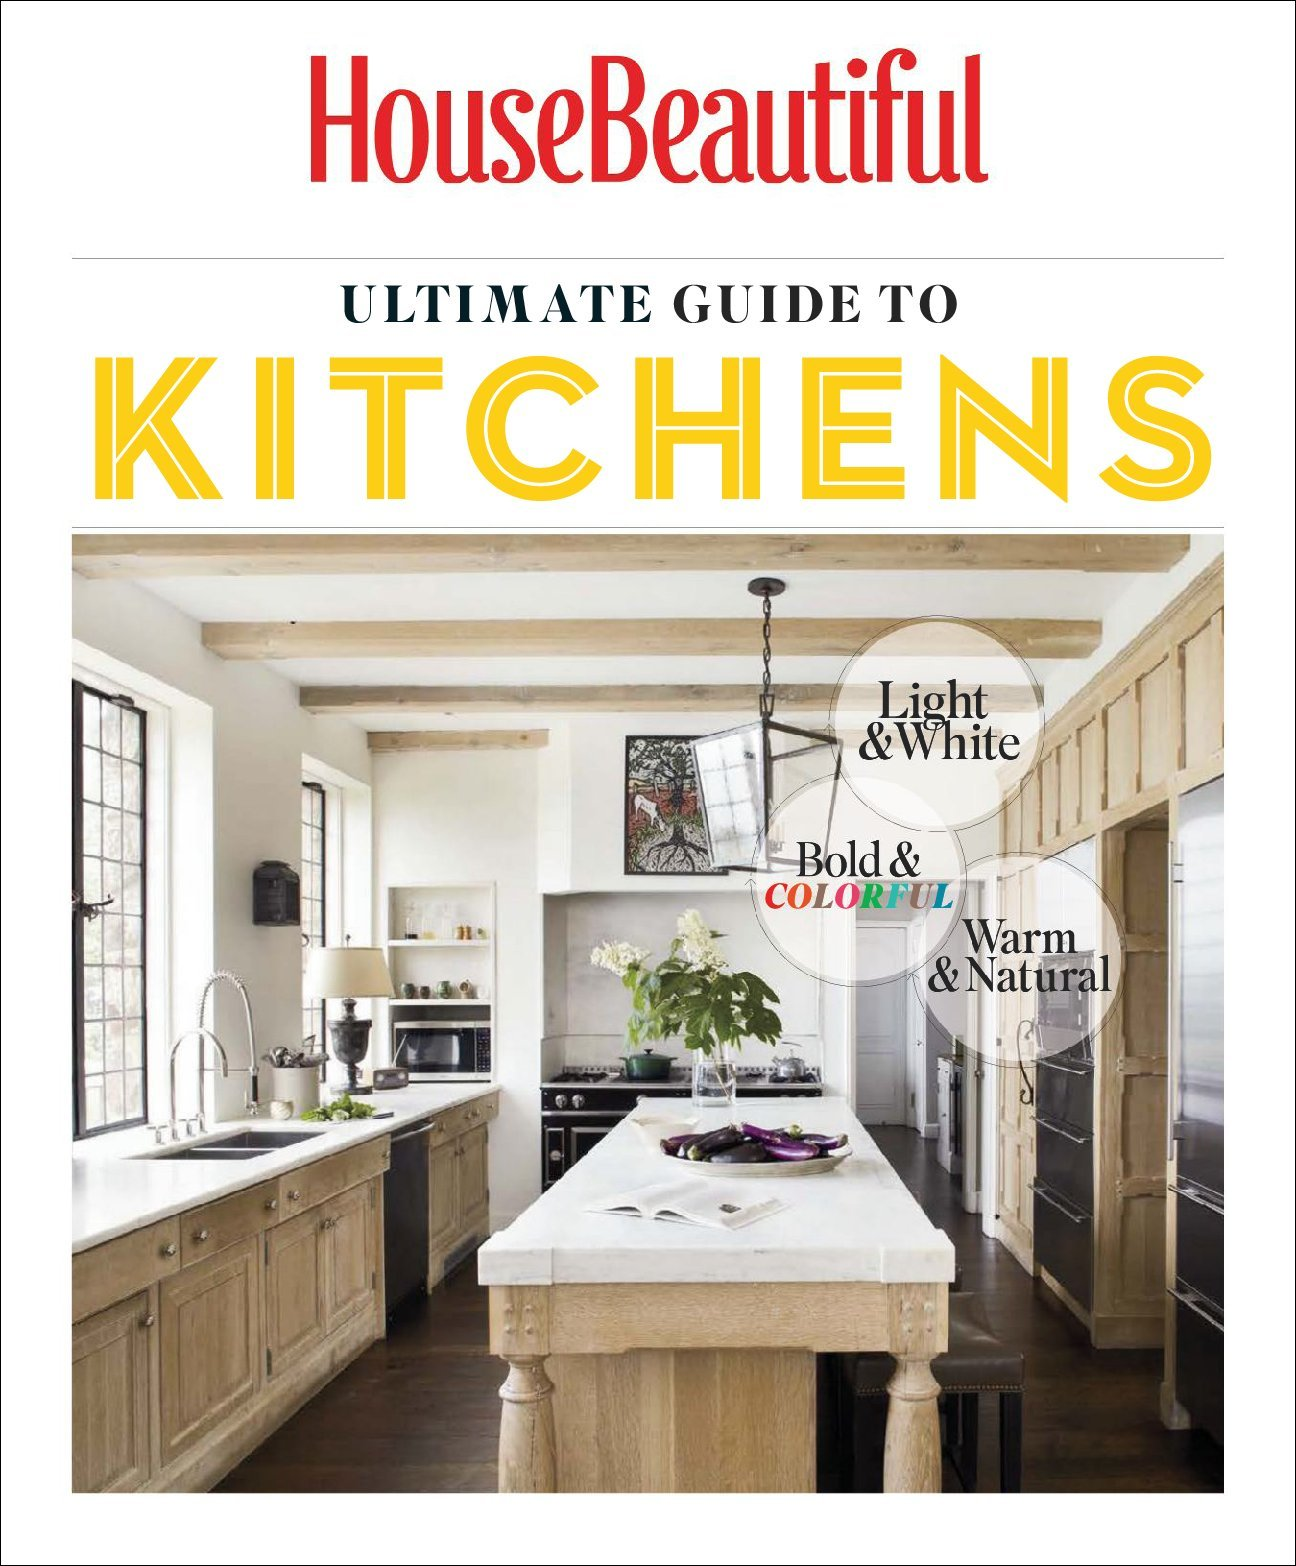 House Beautiful Ultimate Guide To Kitchens Sponsored By Kohler Magazine Digital